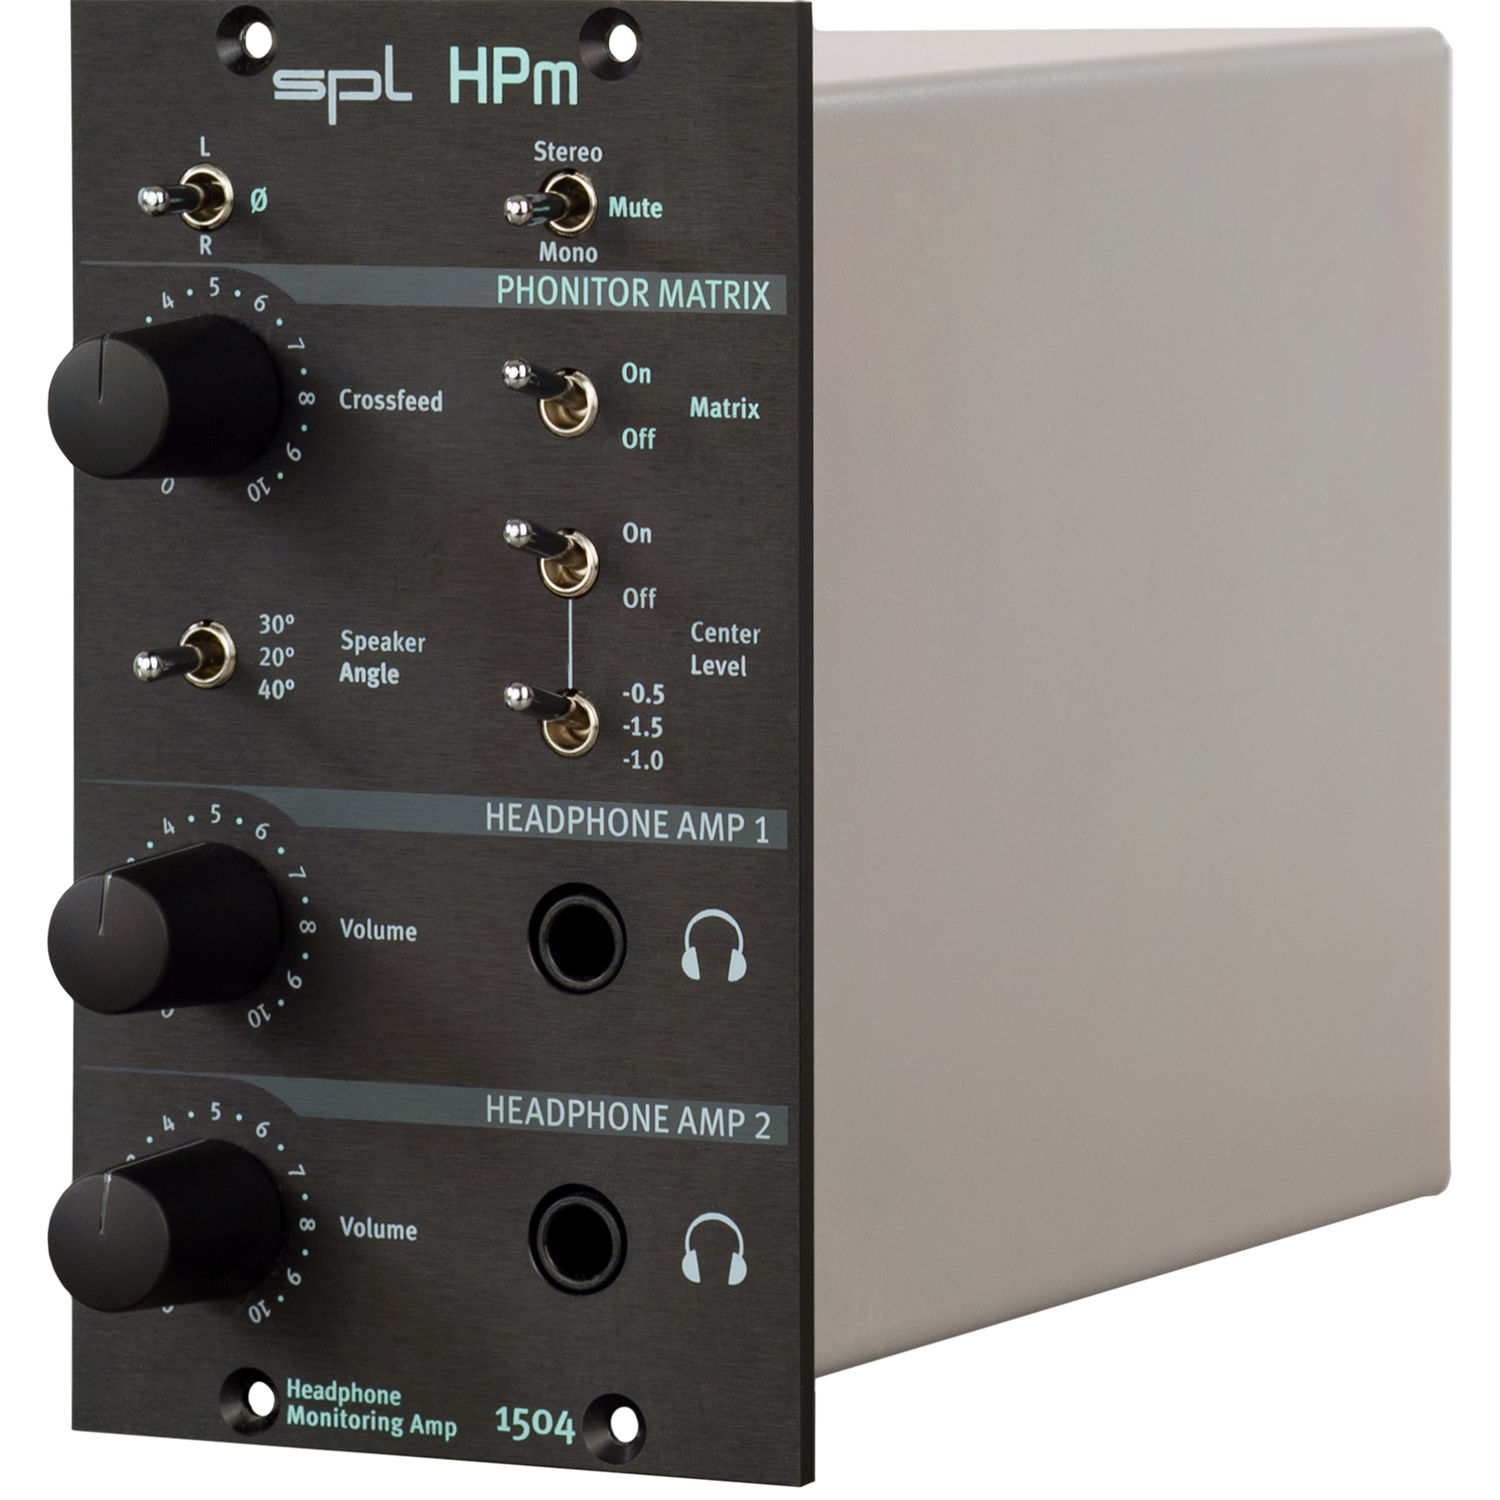 Spl hpm headphone monitoring amplifier in dual splhpmseri500 bh spl hpm headphone monitoring amplifier in dual slot 500 series rack module aloadofball Image collections